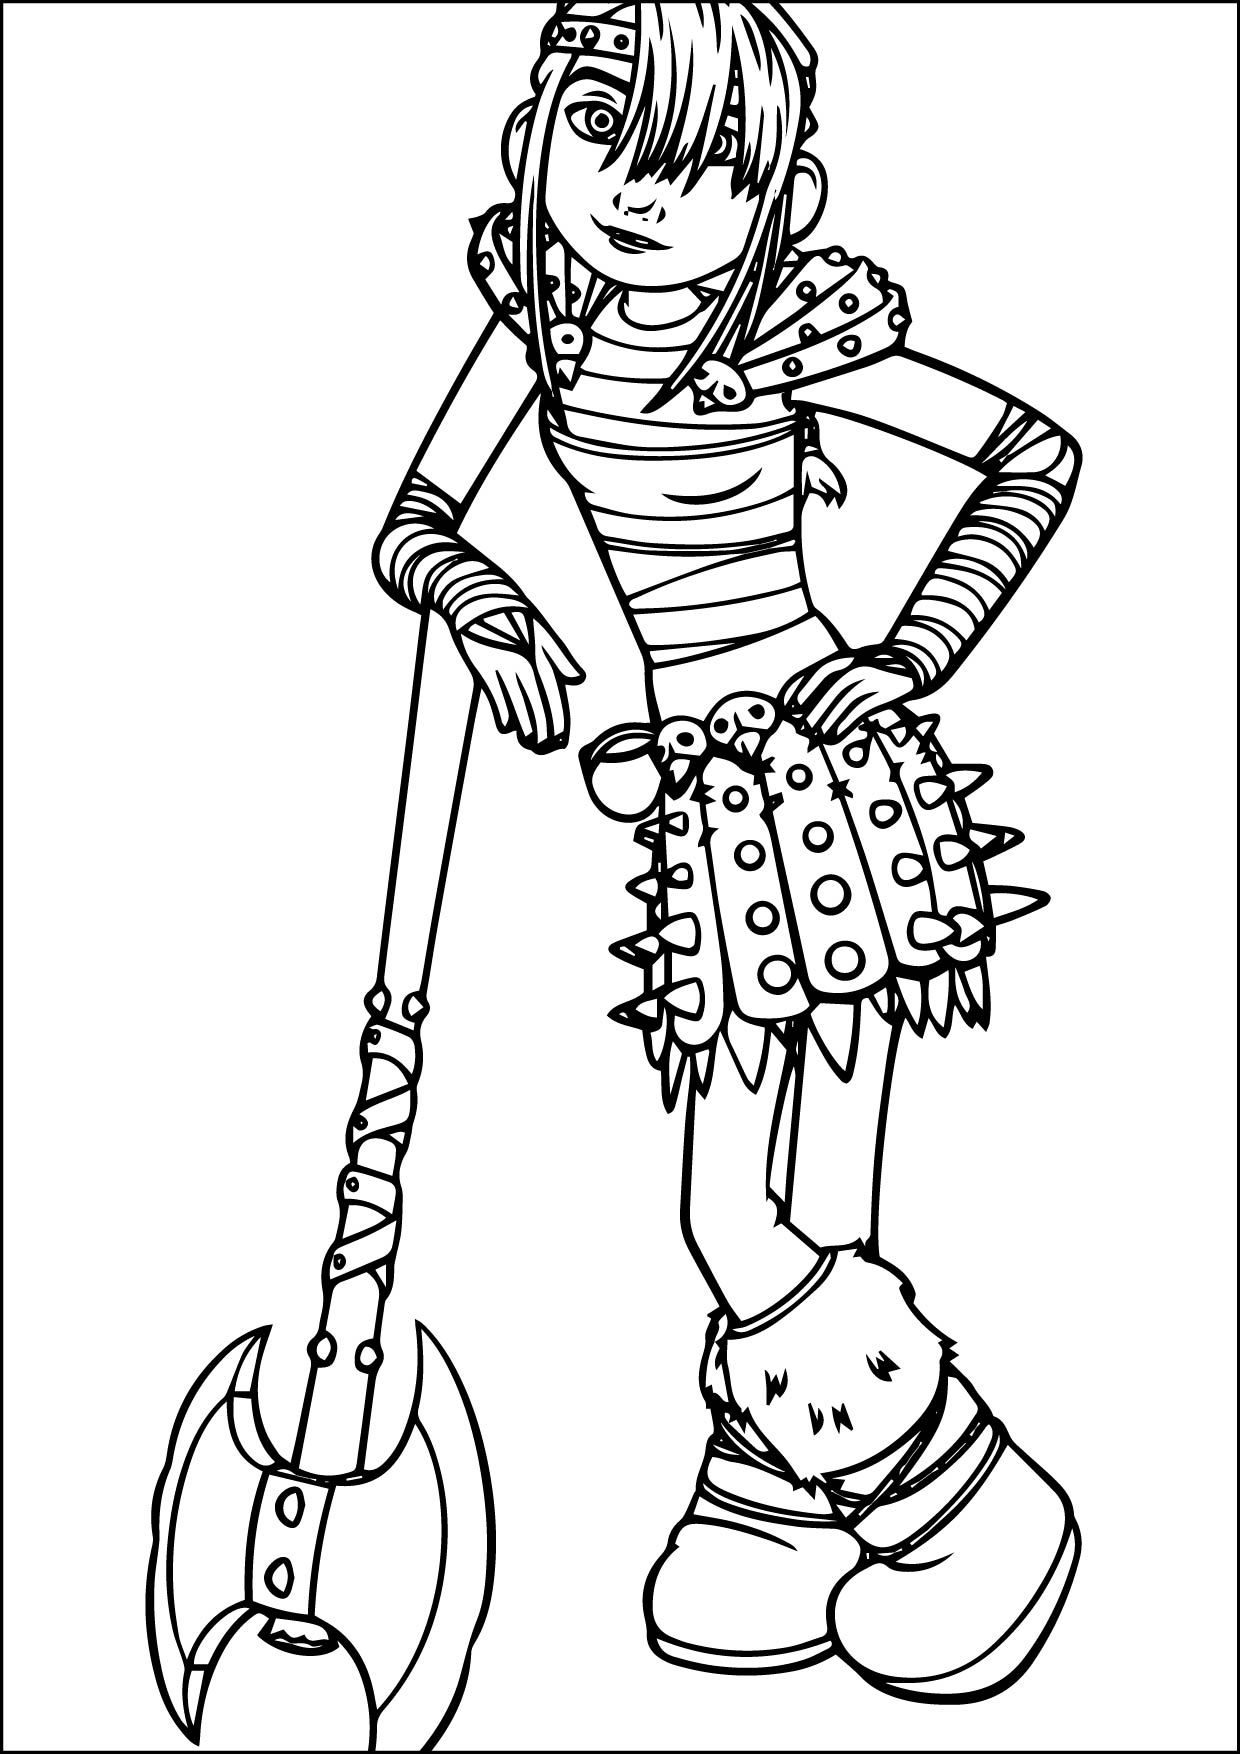 cool coloring page 11102015_09561301 Check more at http